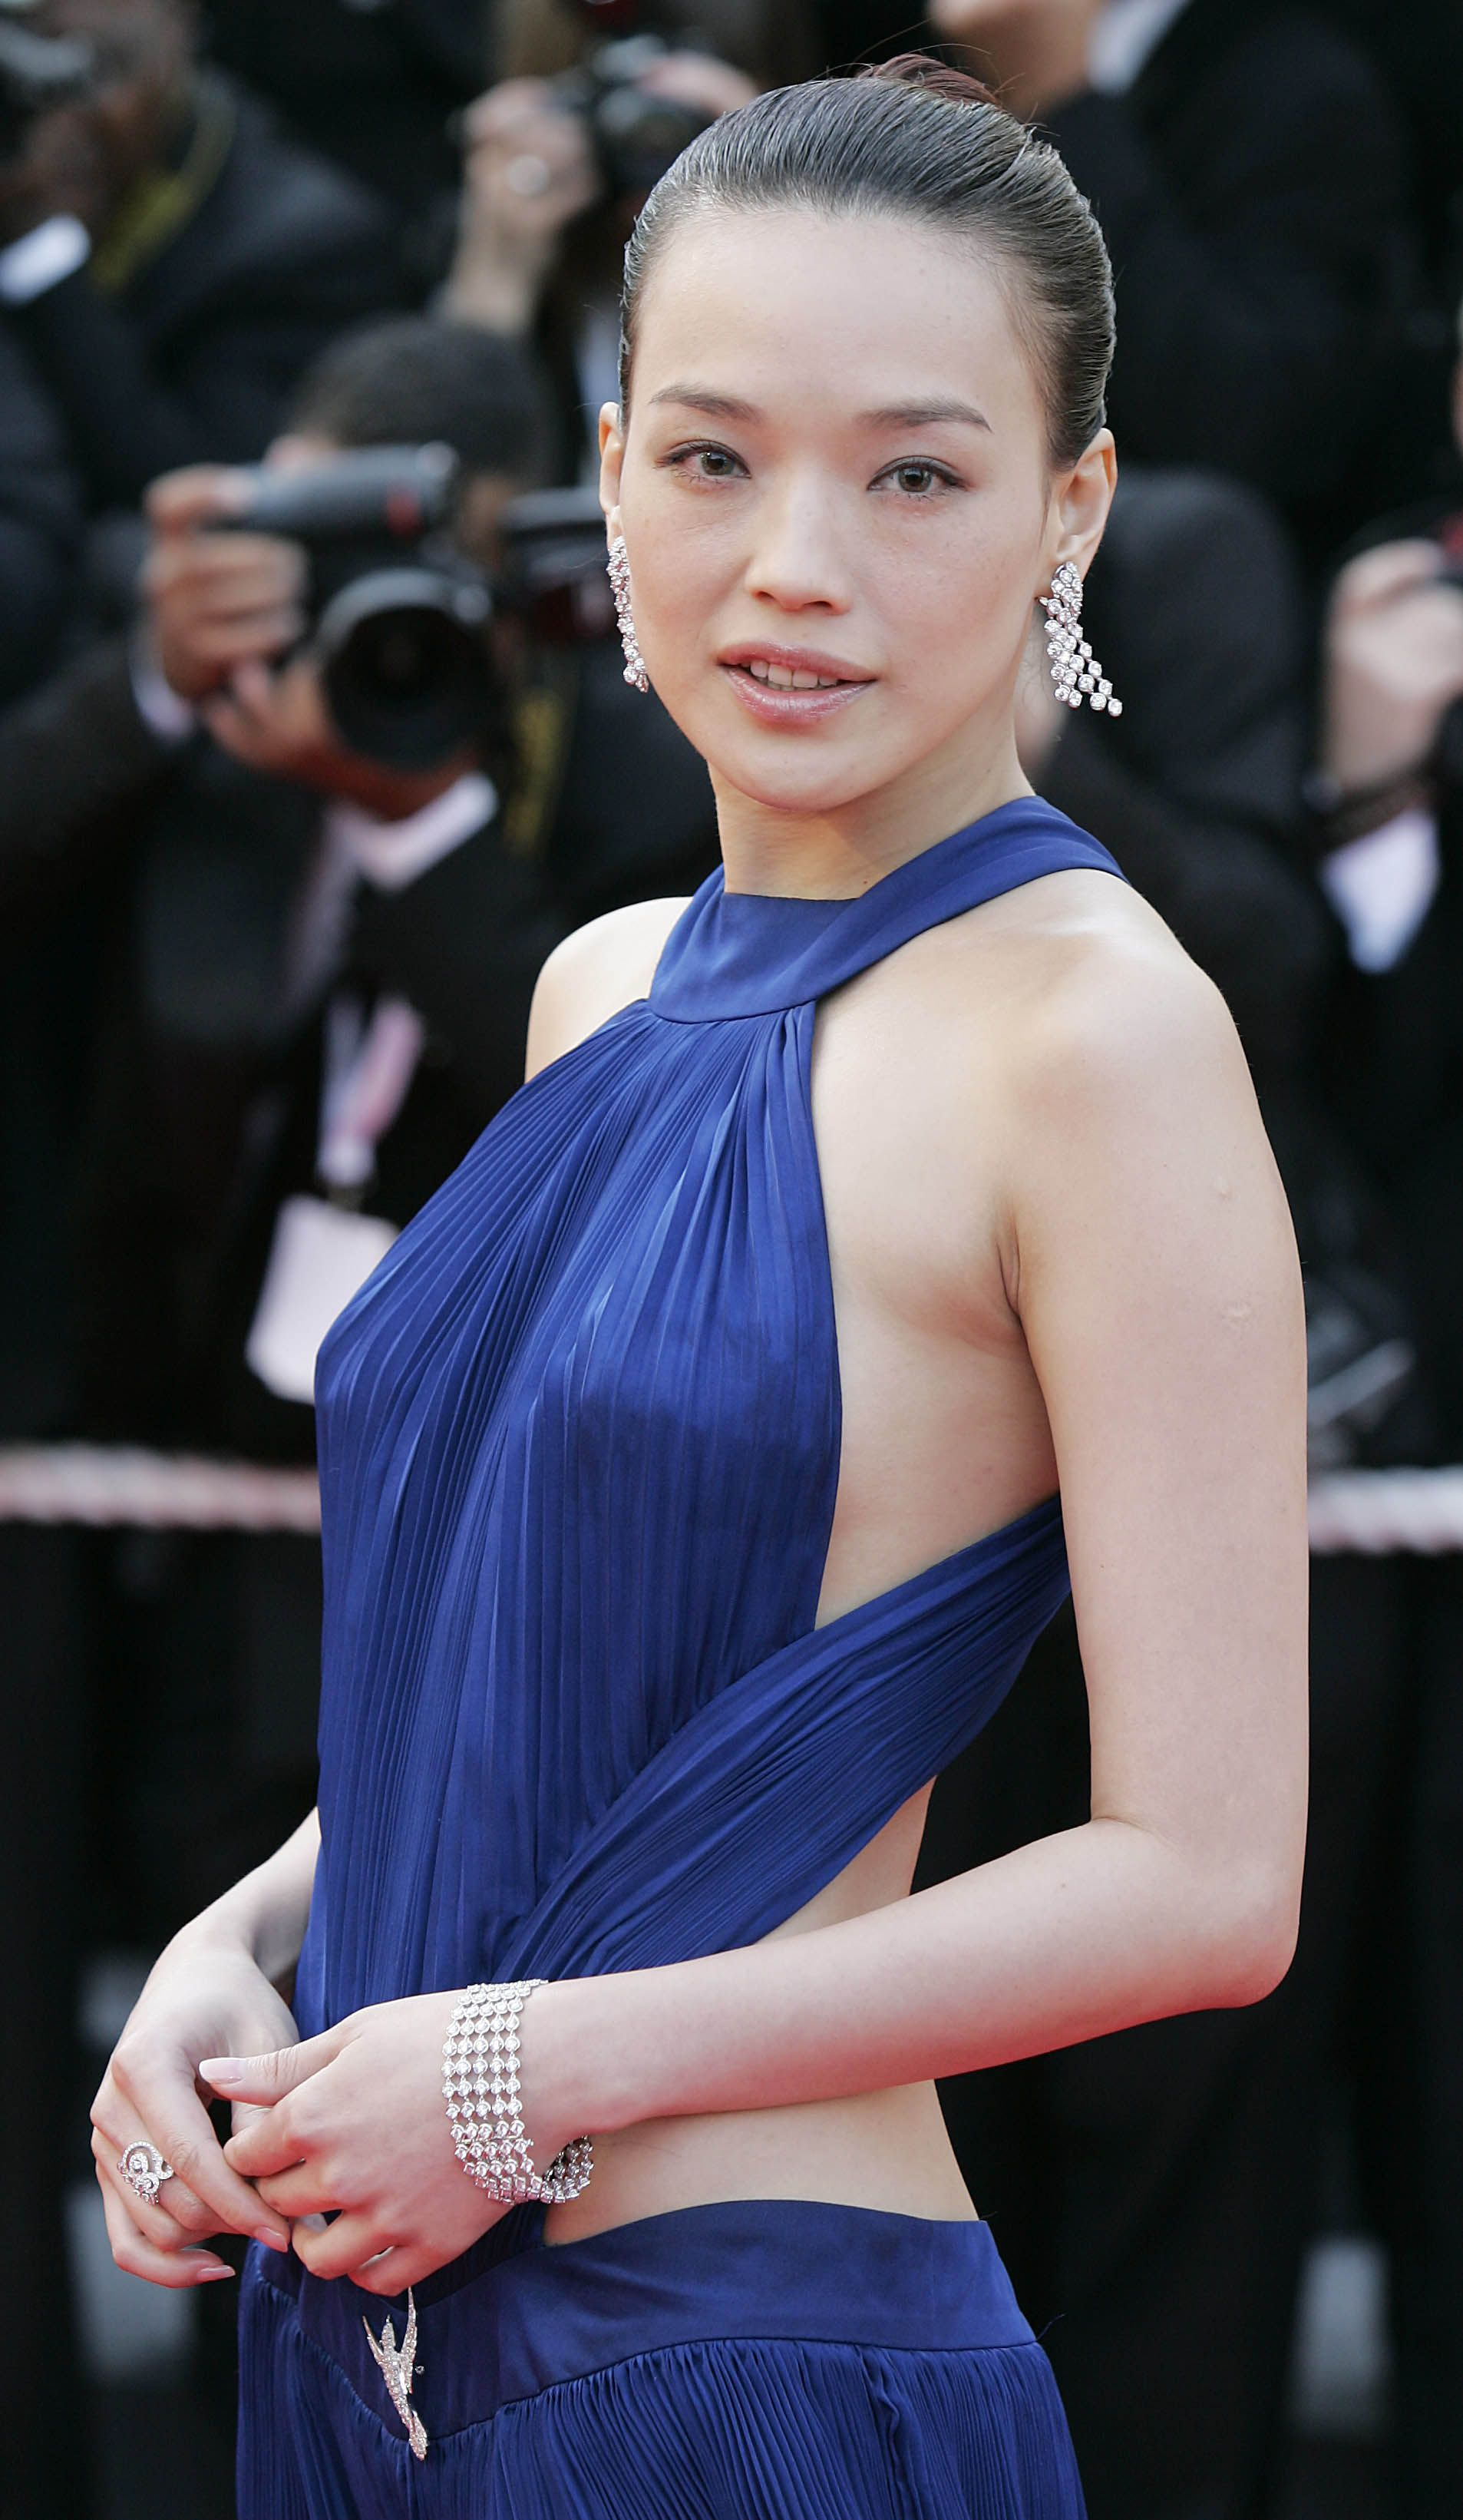 Shu Qi photo's from the 60th Cannes Film Festival. | Celebrity beauty,  Celebrities, Asian beauty